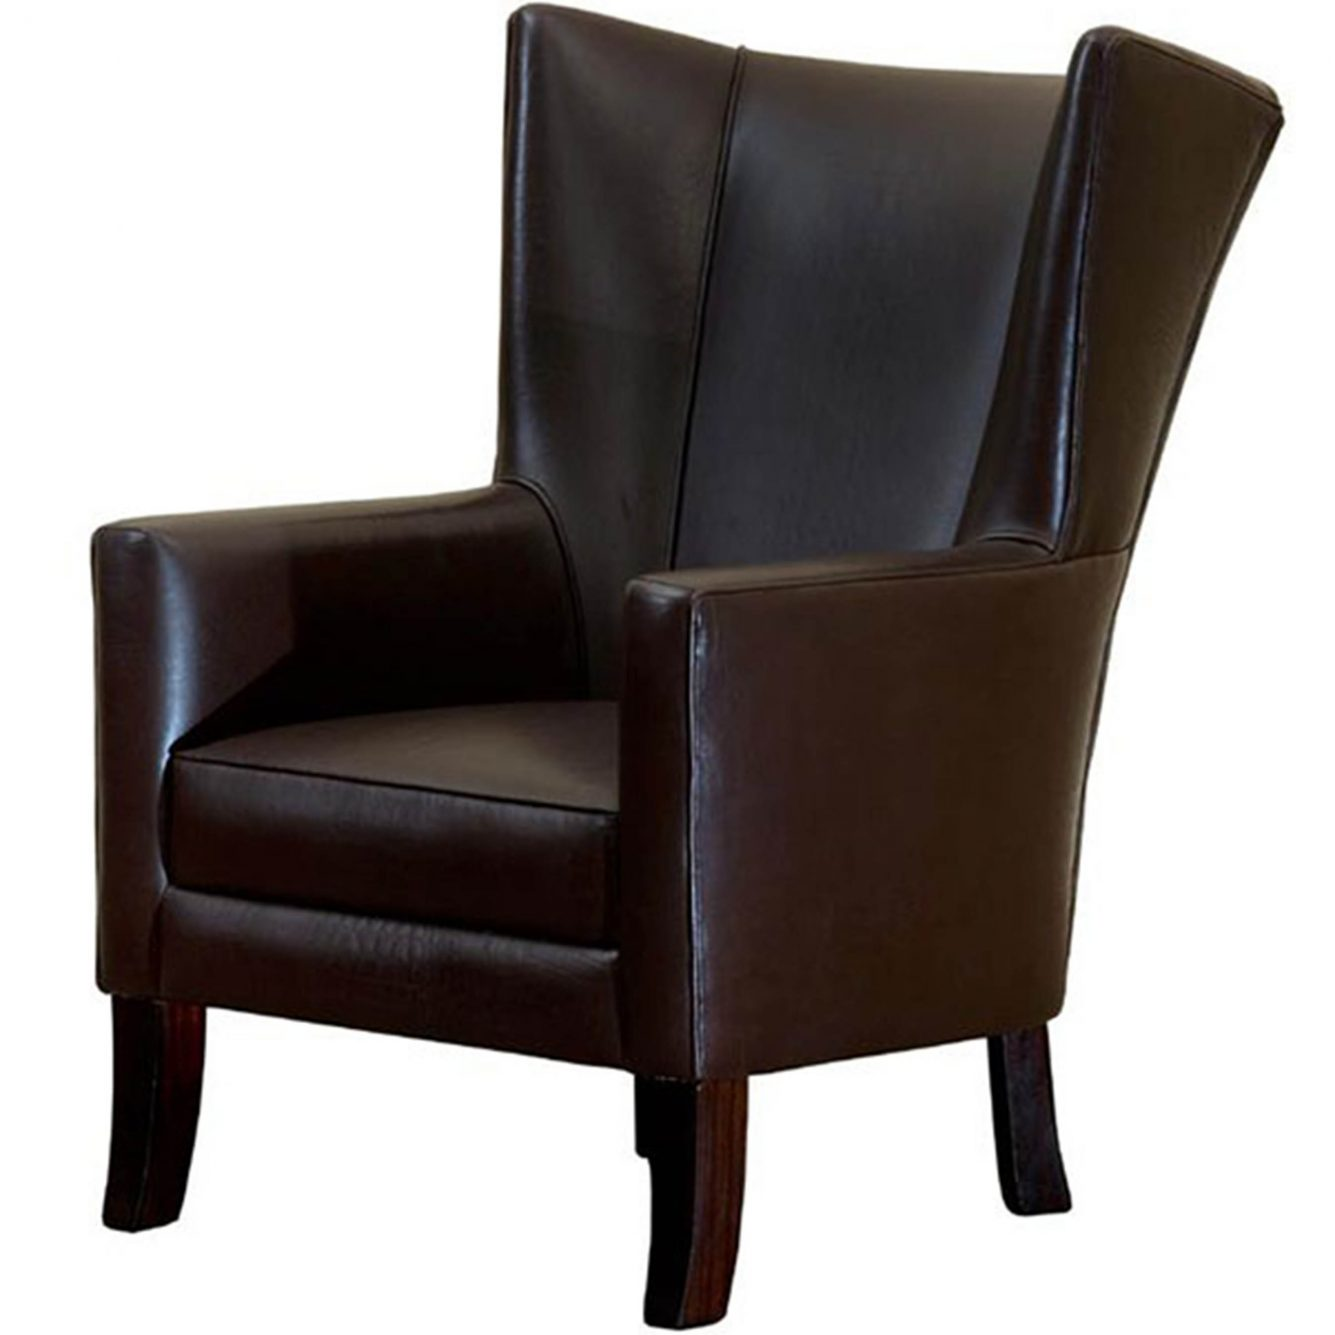 House Haven Occasional Chairs 0034 Arch Wingback